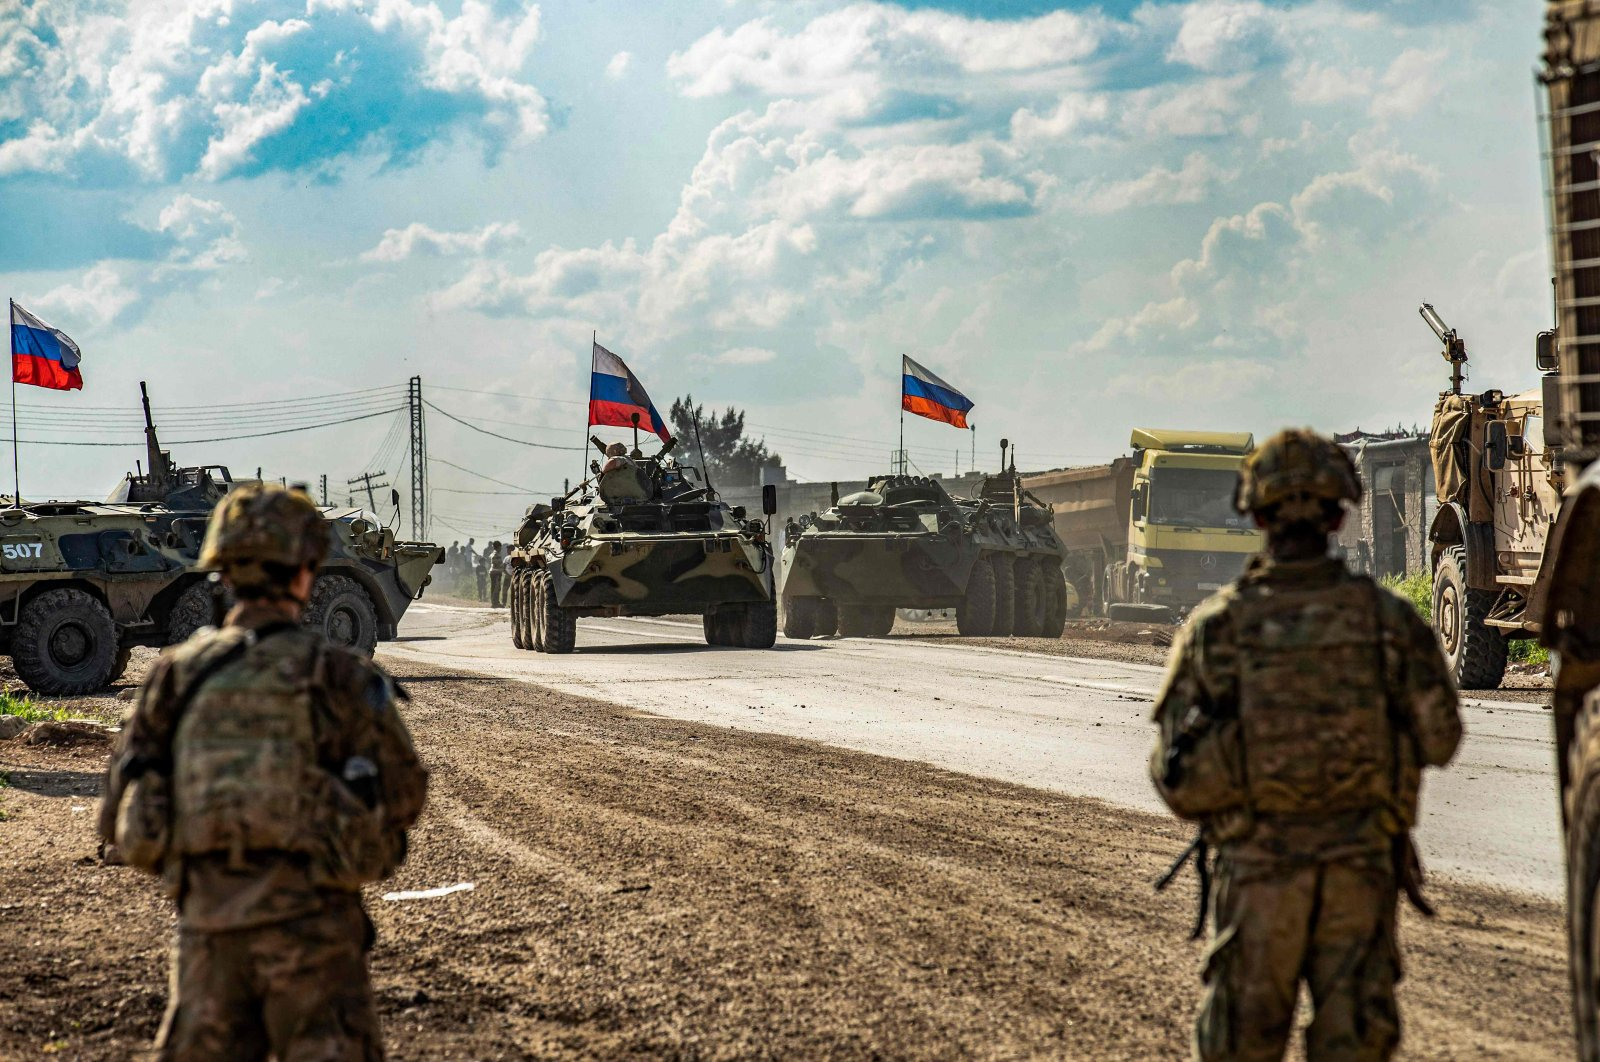 U.S. soldiers stand along a road across from Russian military armored personnel carriers (APCs), near the village of Tannuriyah in the countryside east of Qamishli in Syria's northeastern Hasakah province, May 2, 2020. (AFP Photo)